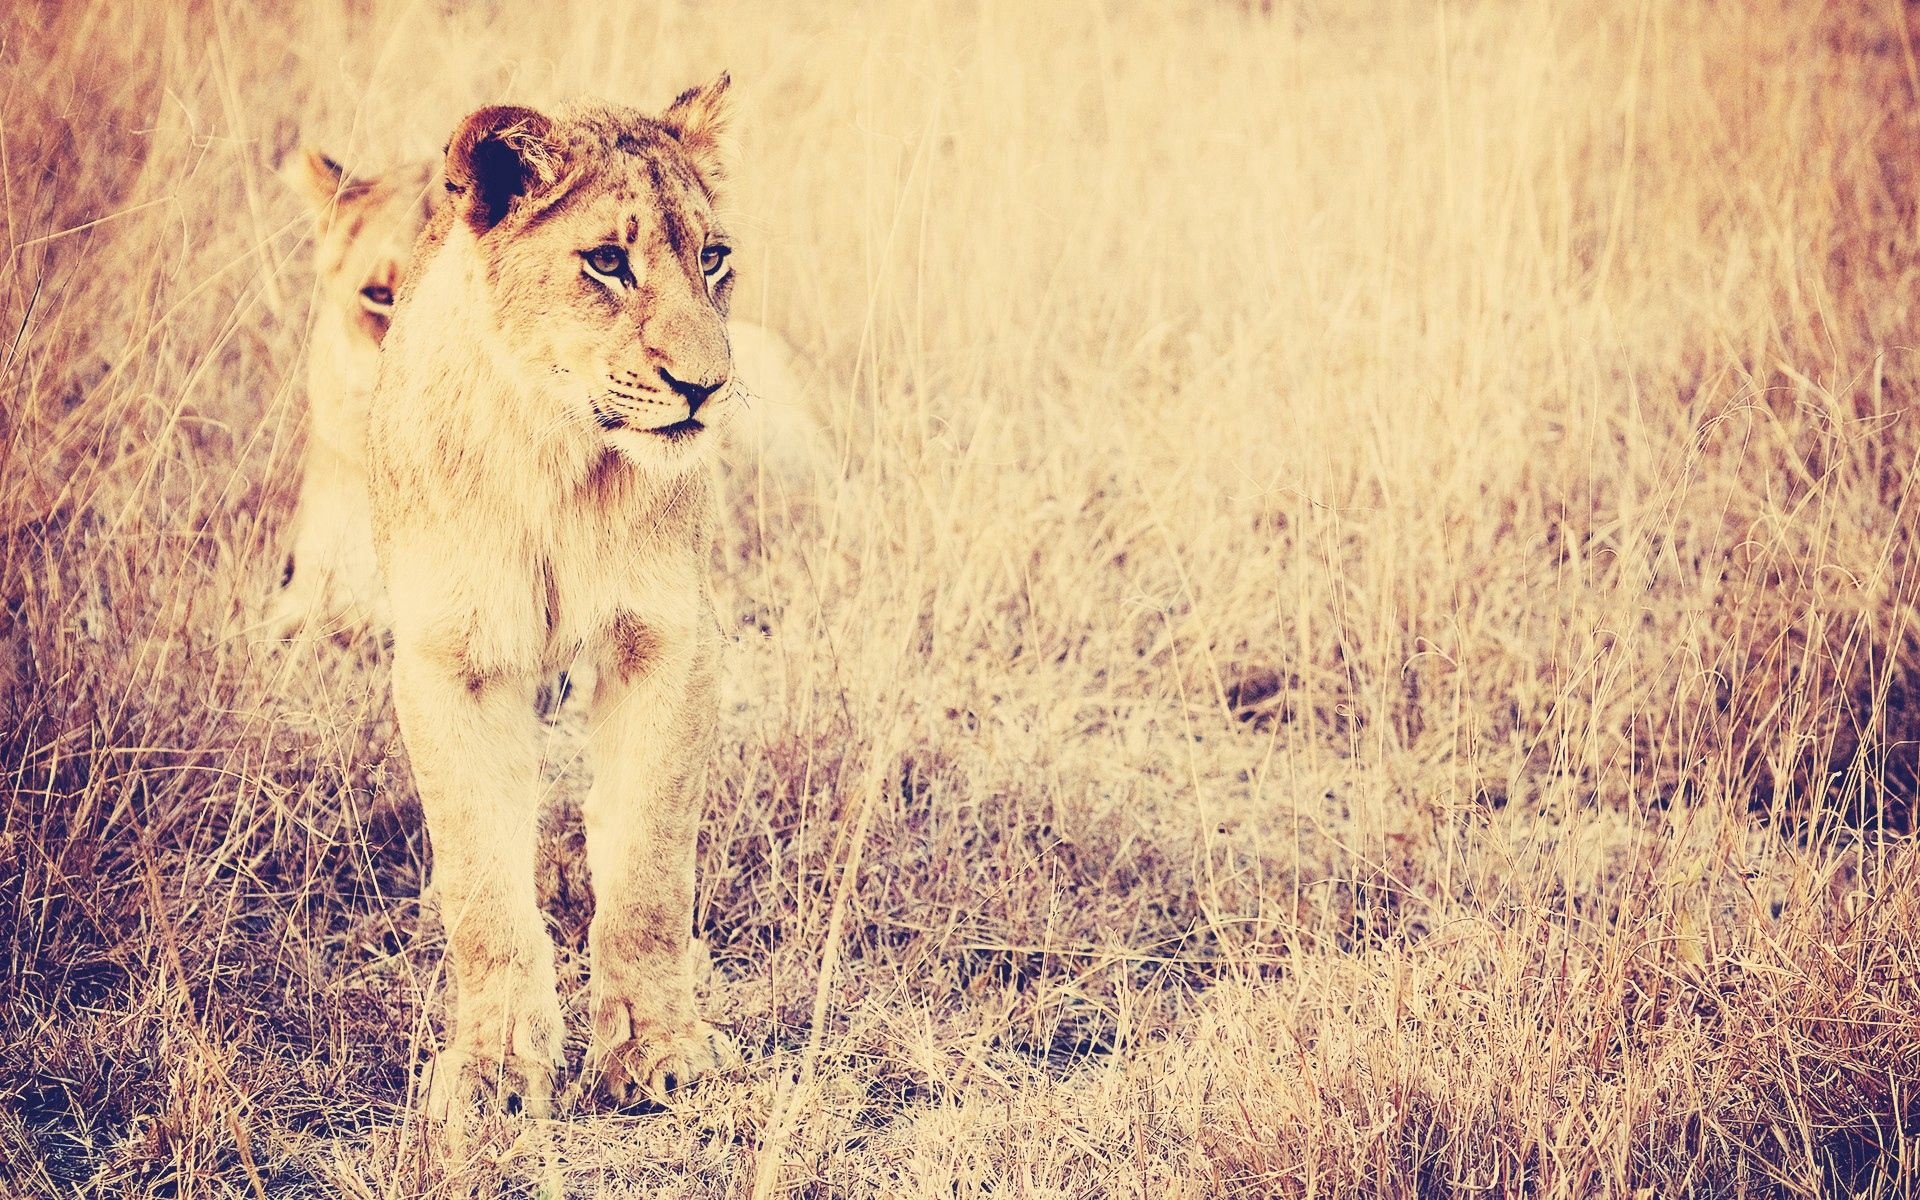 86911 download wallpaper Animals, Lion, Big Cat, Predator, Grass screensavers and pictures for free